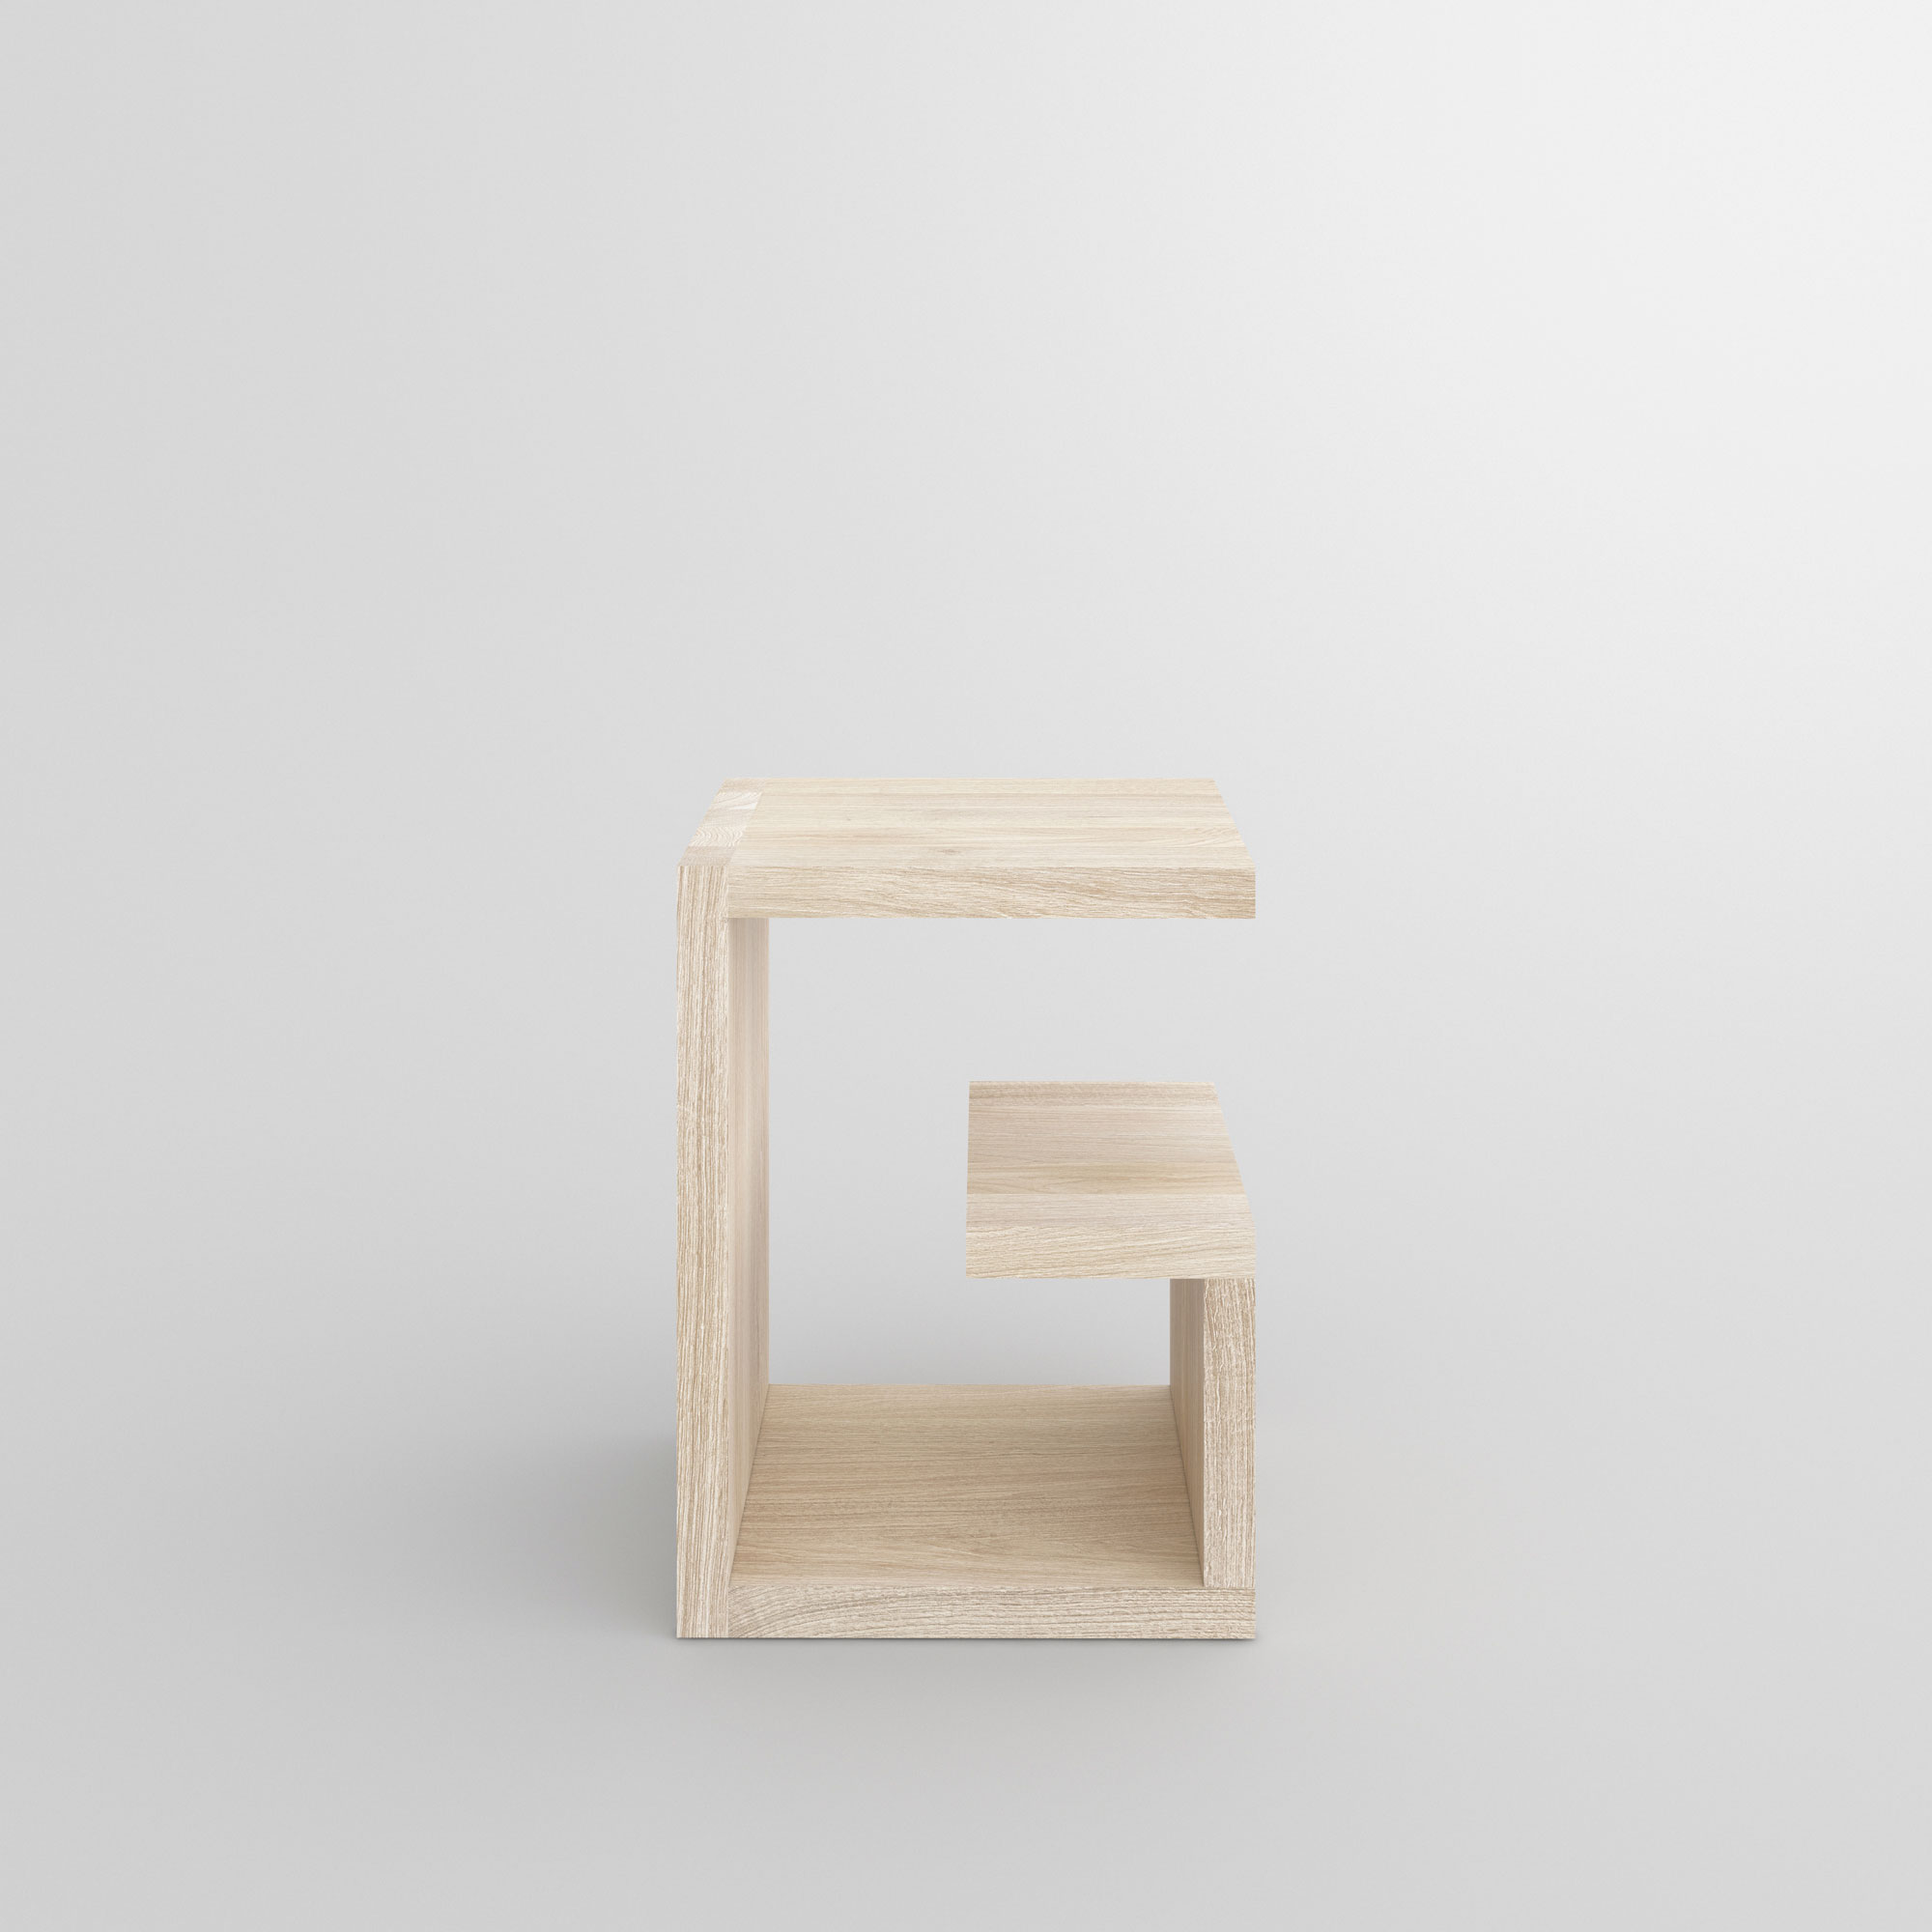 Design Wood Stool MENA G 4 custom made in solid wood by vitamin design